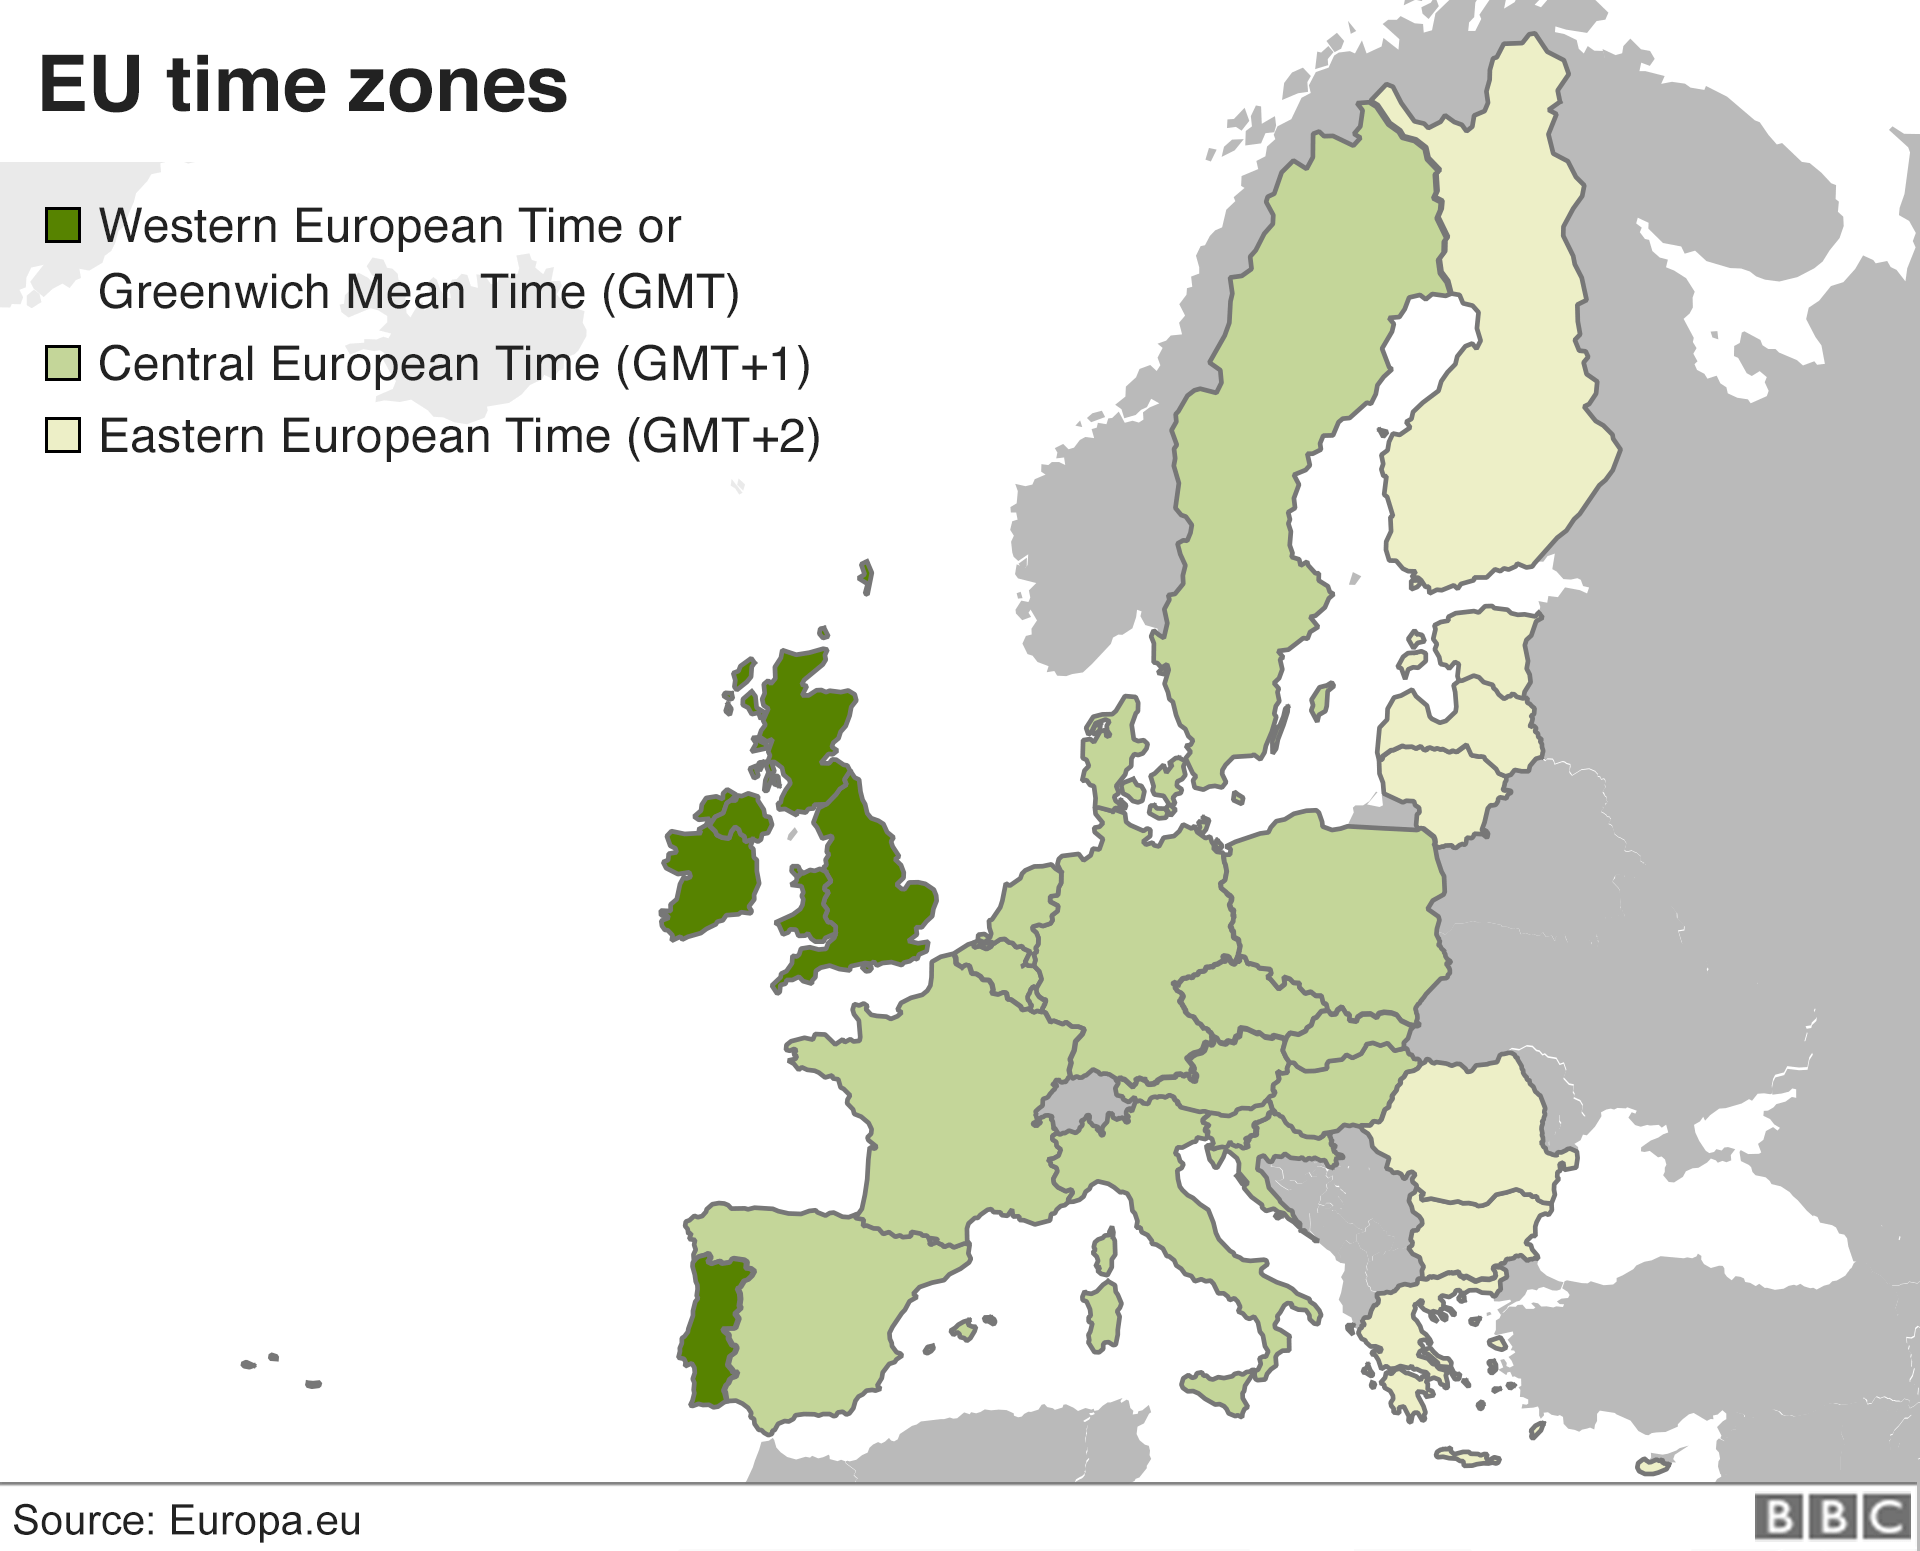 European MPs vote to end summer time clock changes - BBC News on edt time now, pdt time now, india time now, est time now, pacific time now, mst time now, ist time now, cst time now, cet time now,